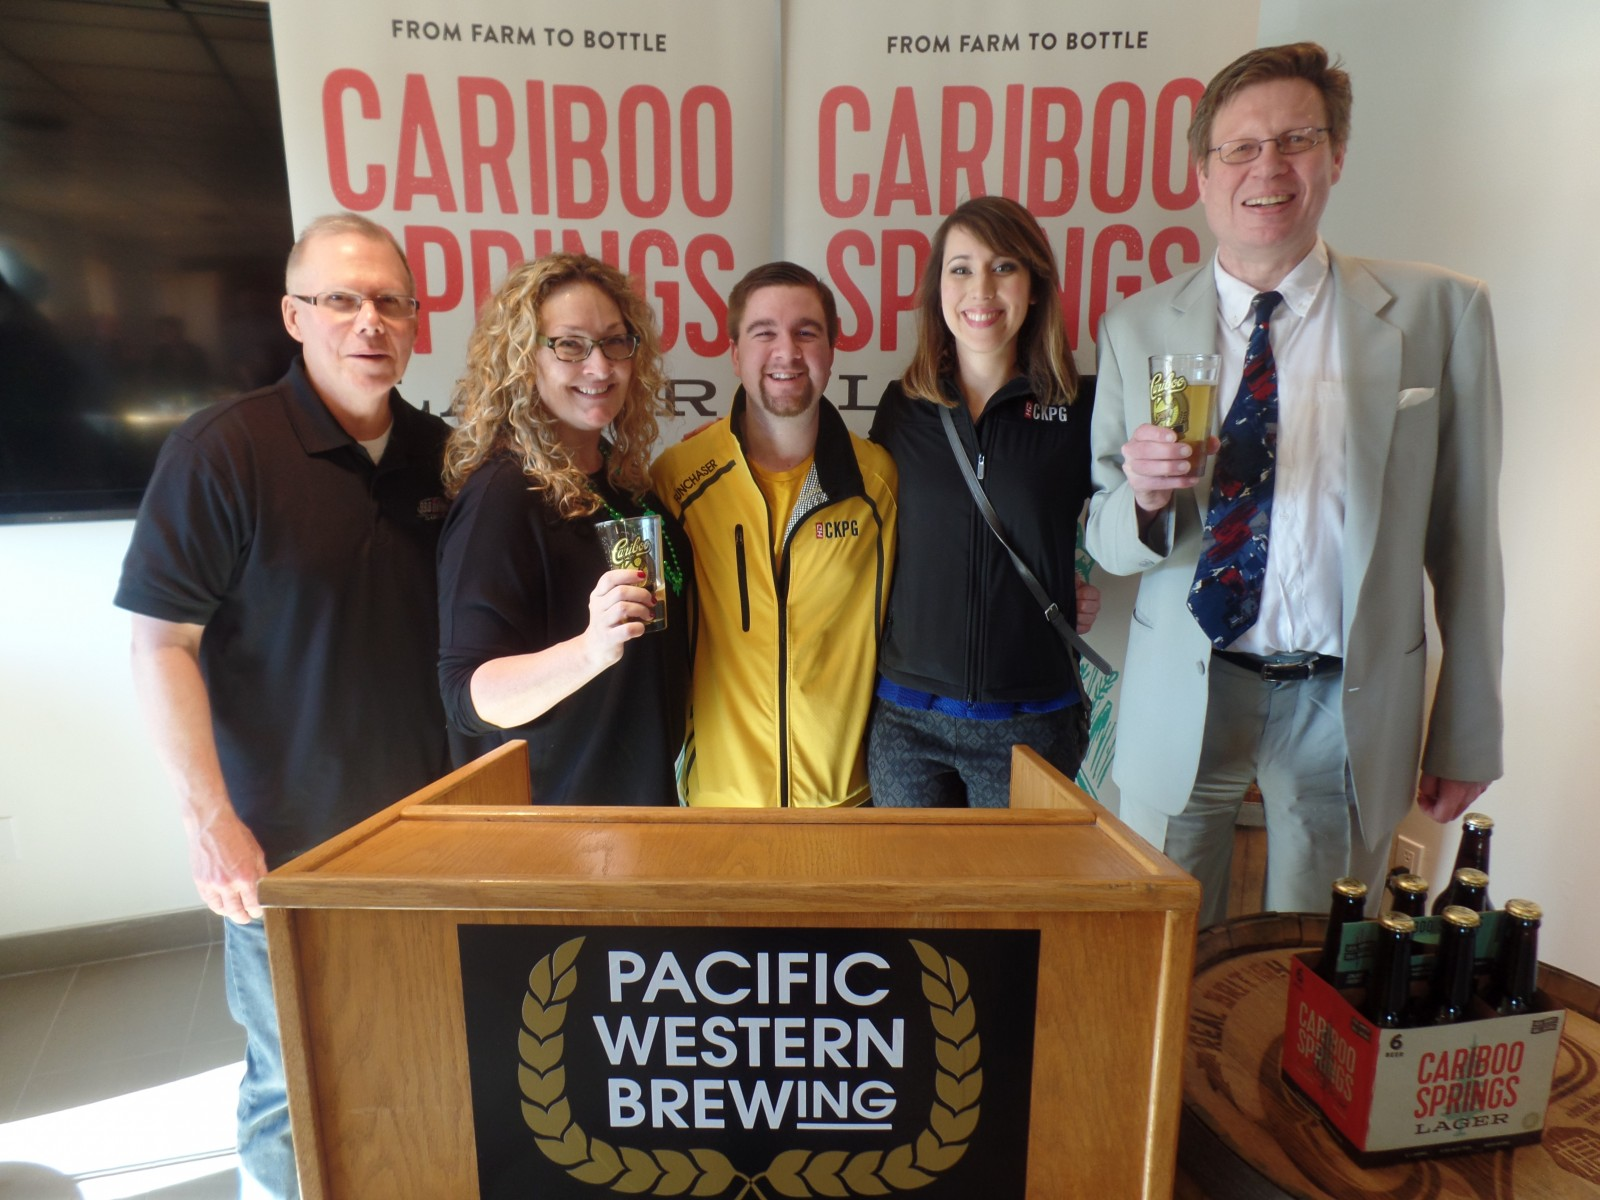 FunChaser @ Pacific Western Brewing - Cariboo Springs Launch